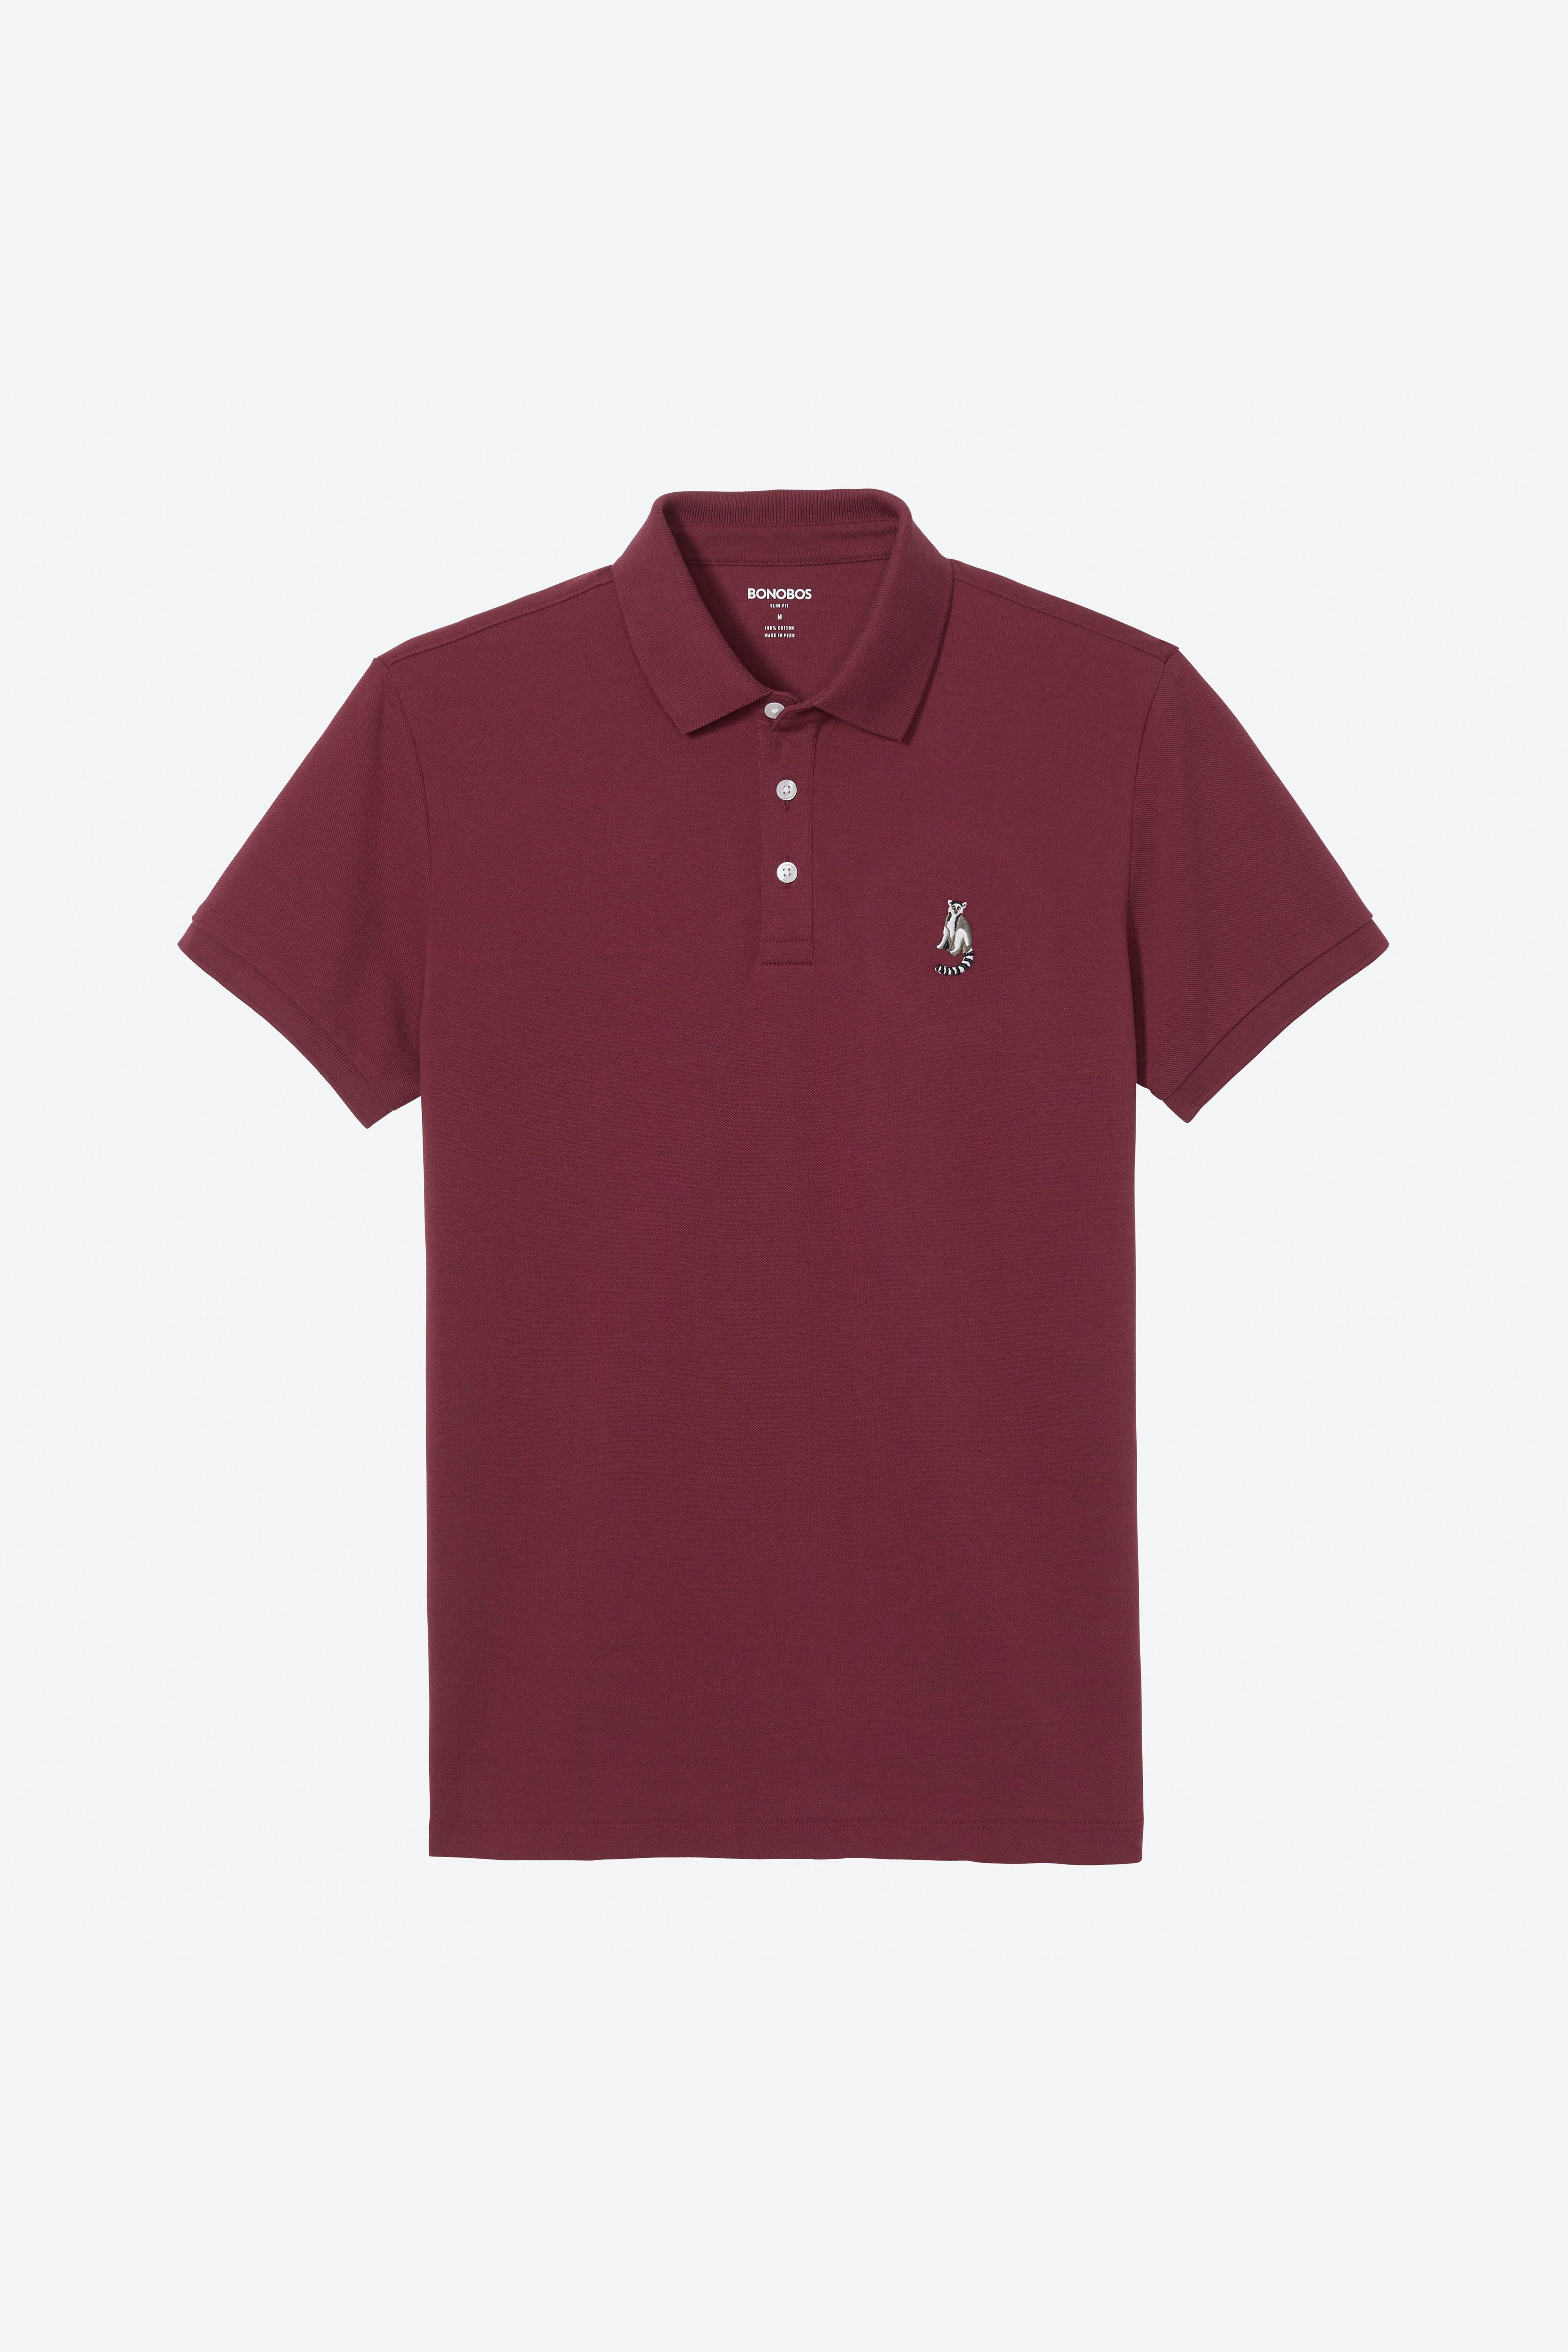 Limited Edition Pique Polo